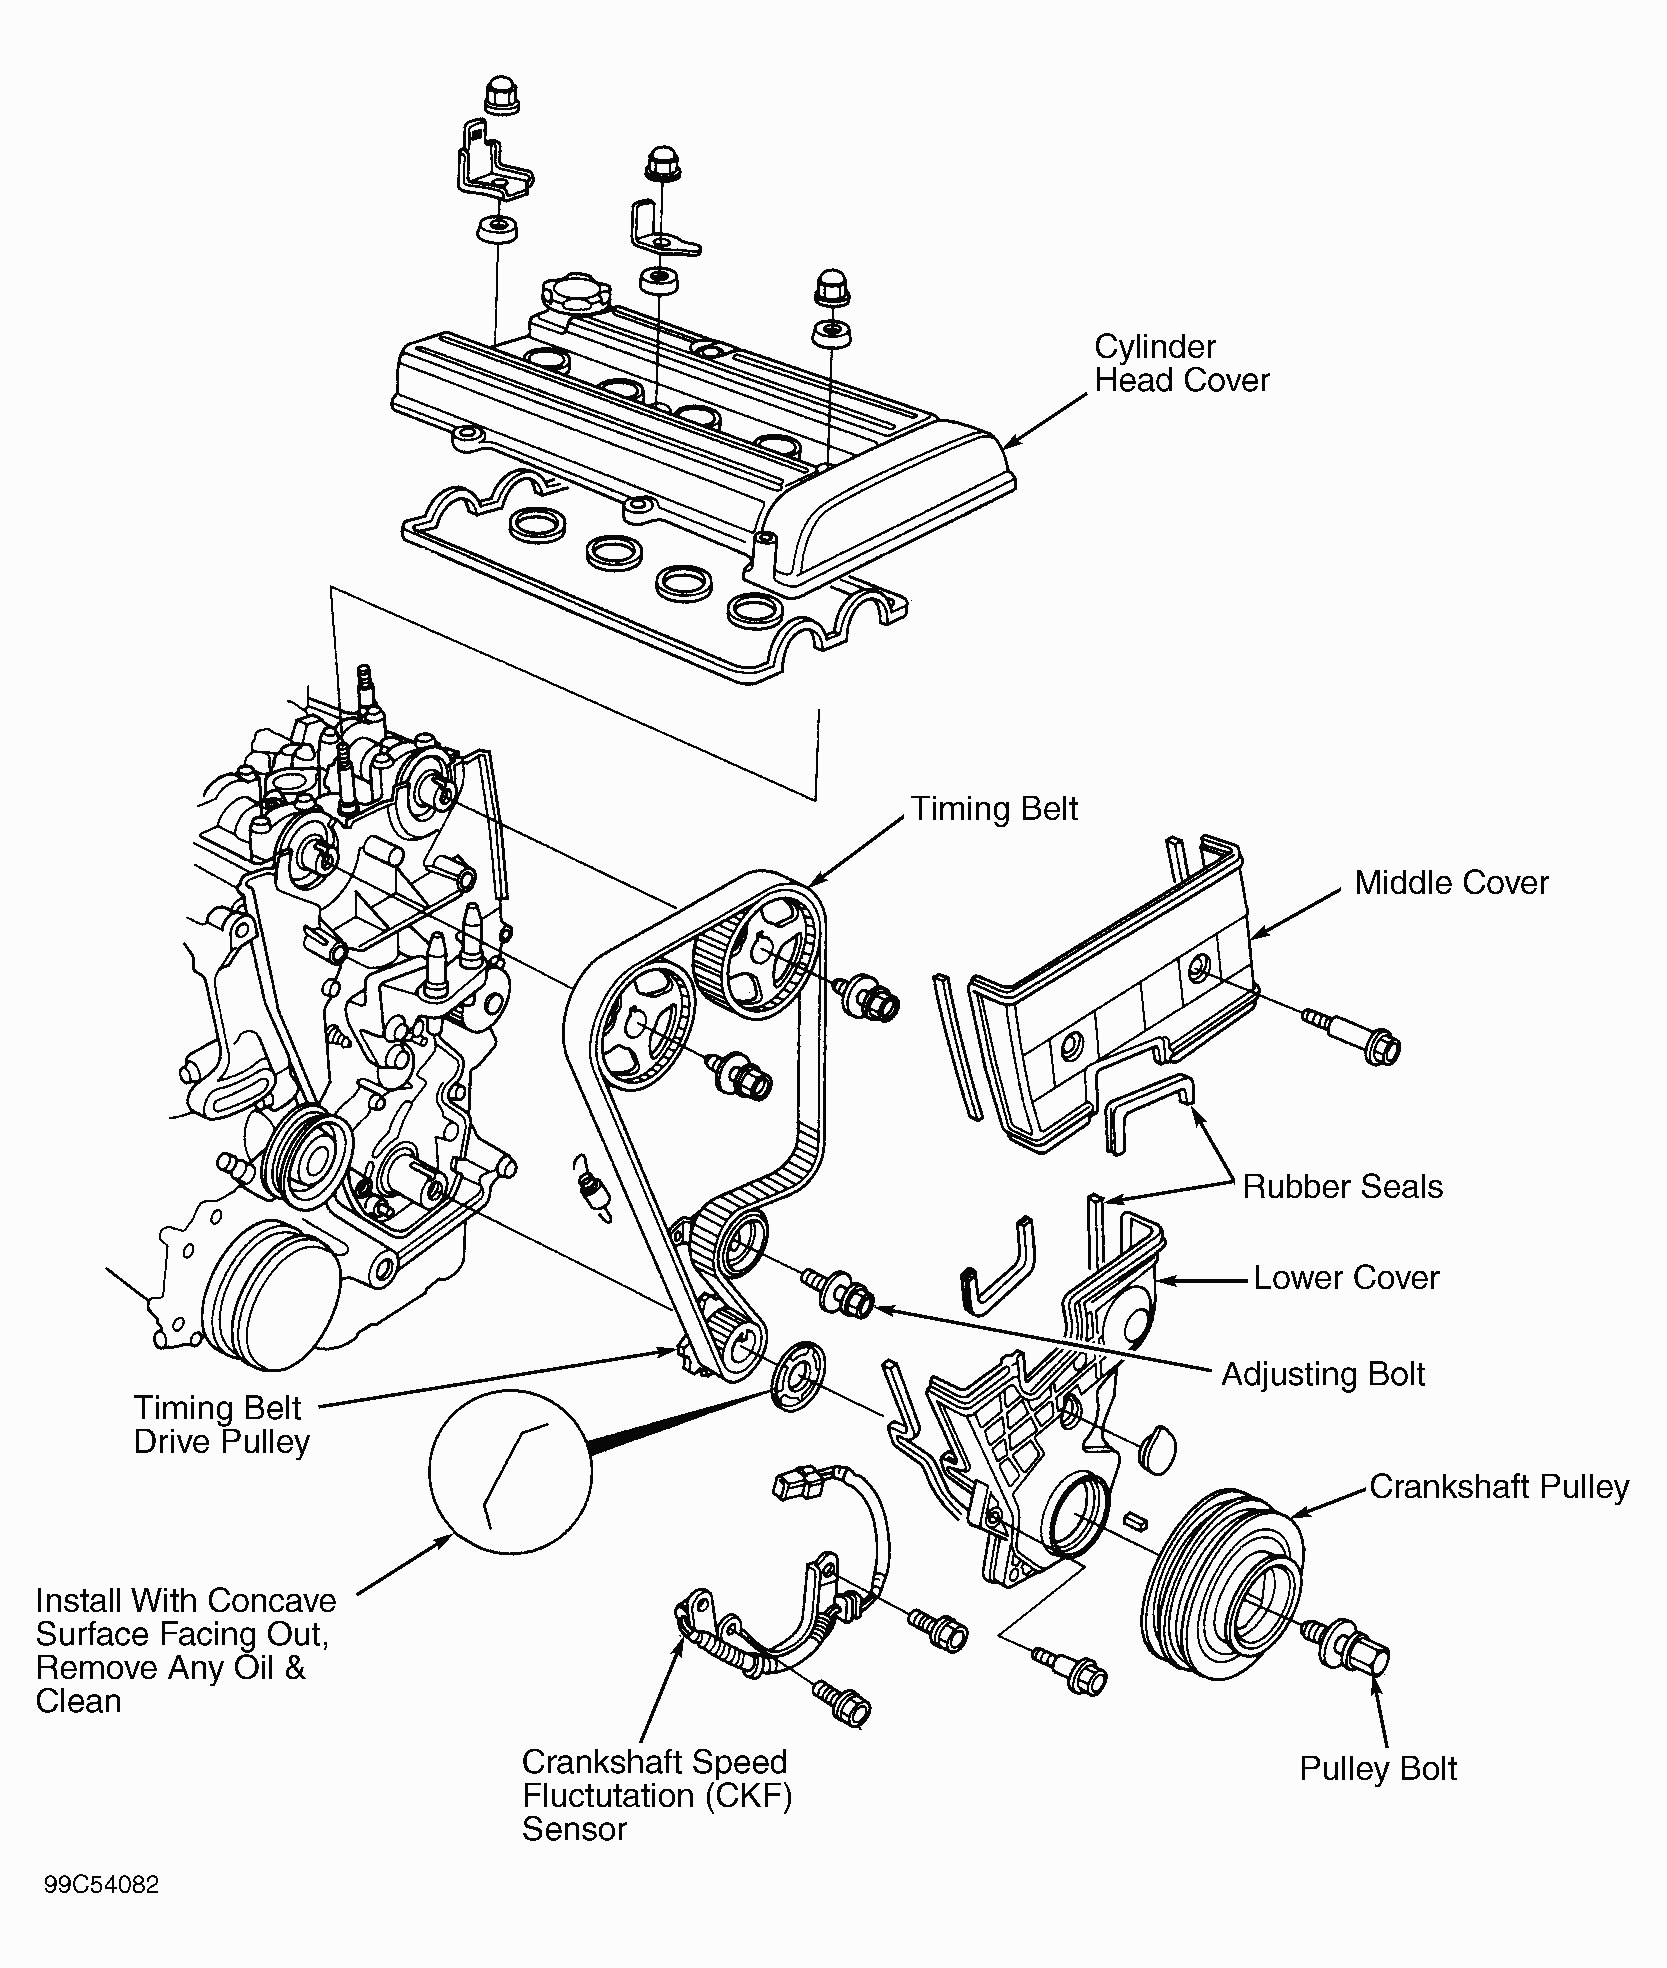 2004 honda crv engine diagram honda 2001 crv wiring diagram wiring diagram and schematics  u2013 my